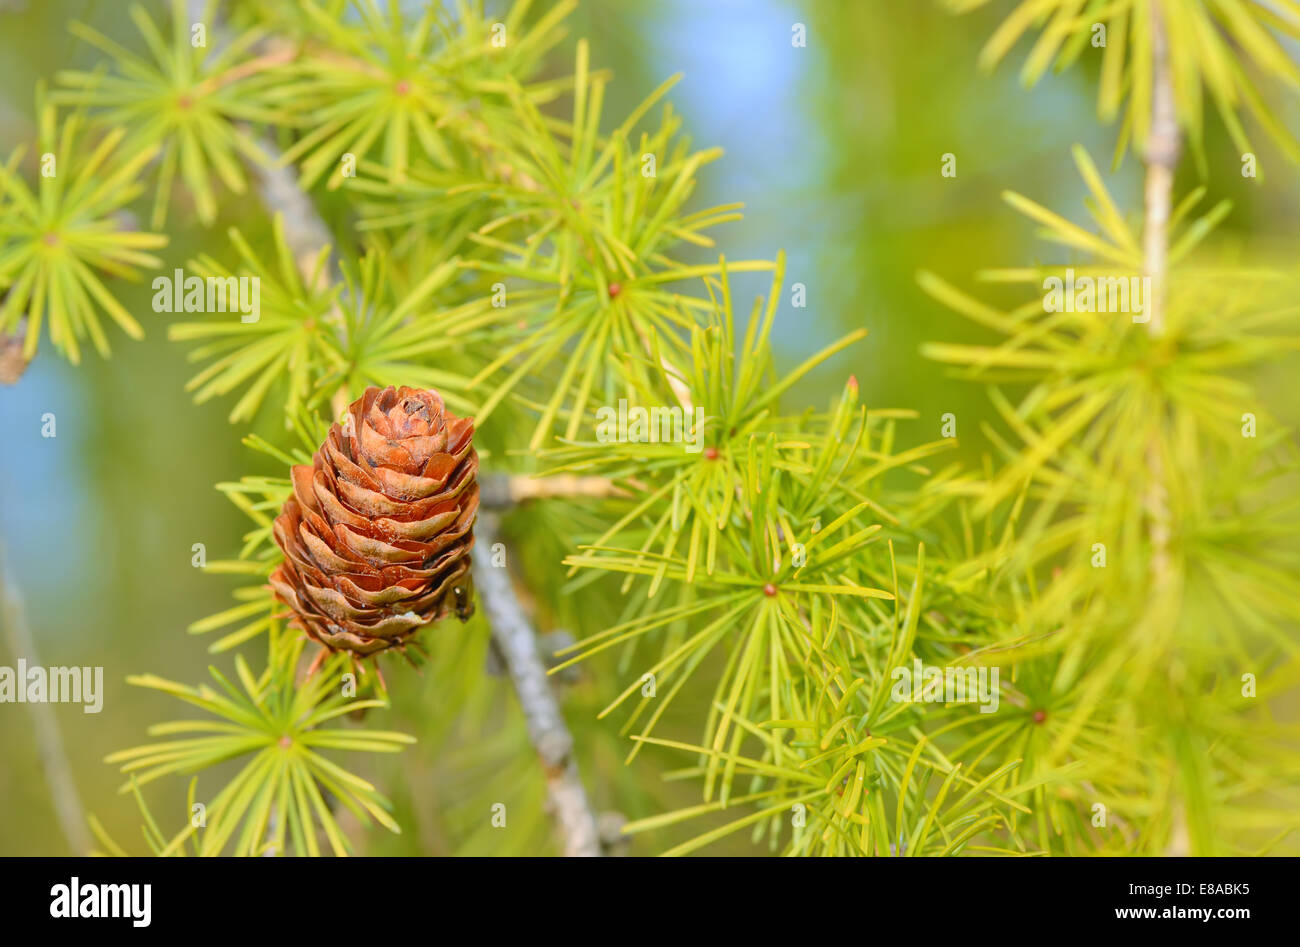 Pine cones on branch, isolate - Stock Image